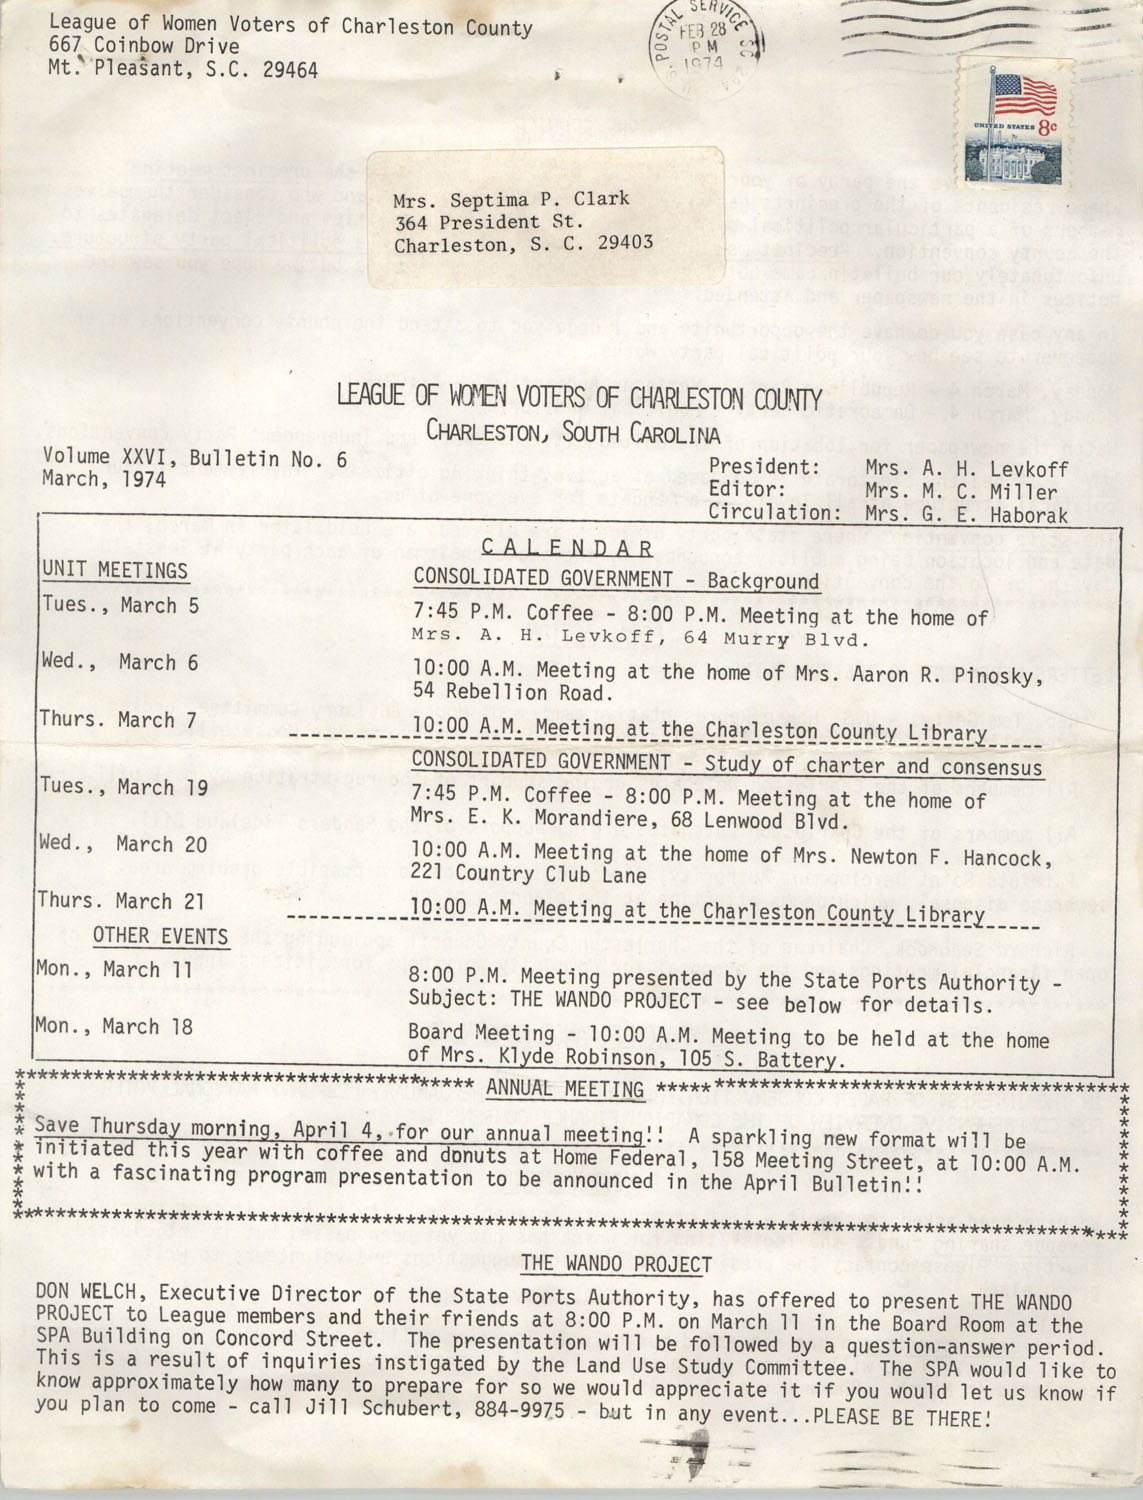 League of Women Voters of Charleston County, Volume XXVI, Bulletin No. 6, March 1972